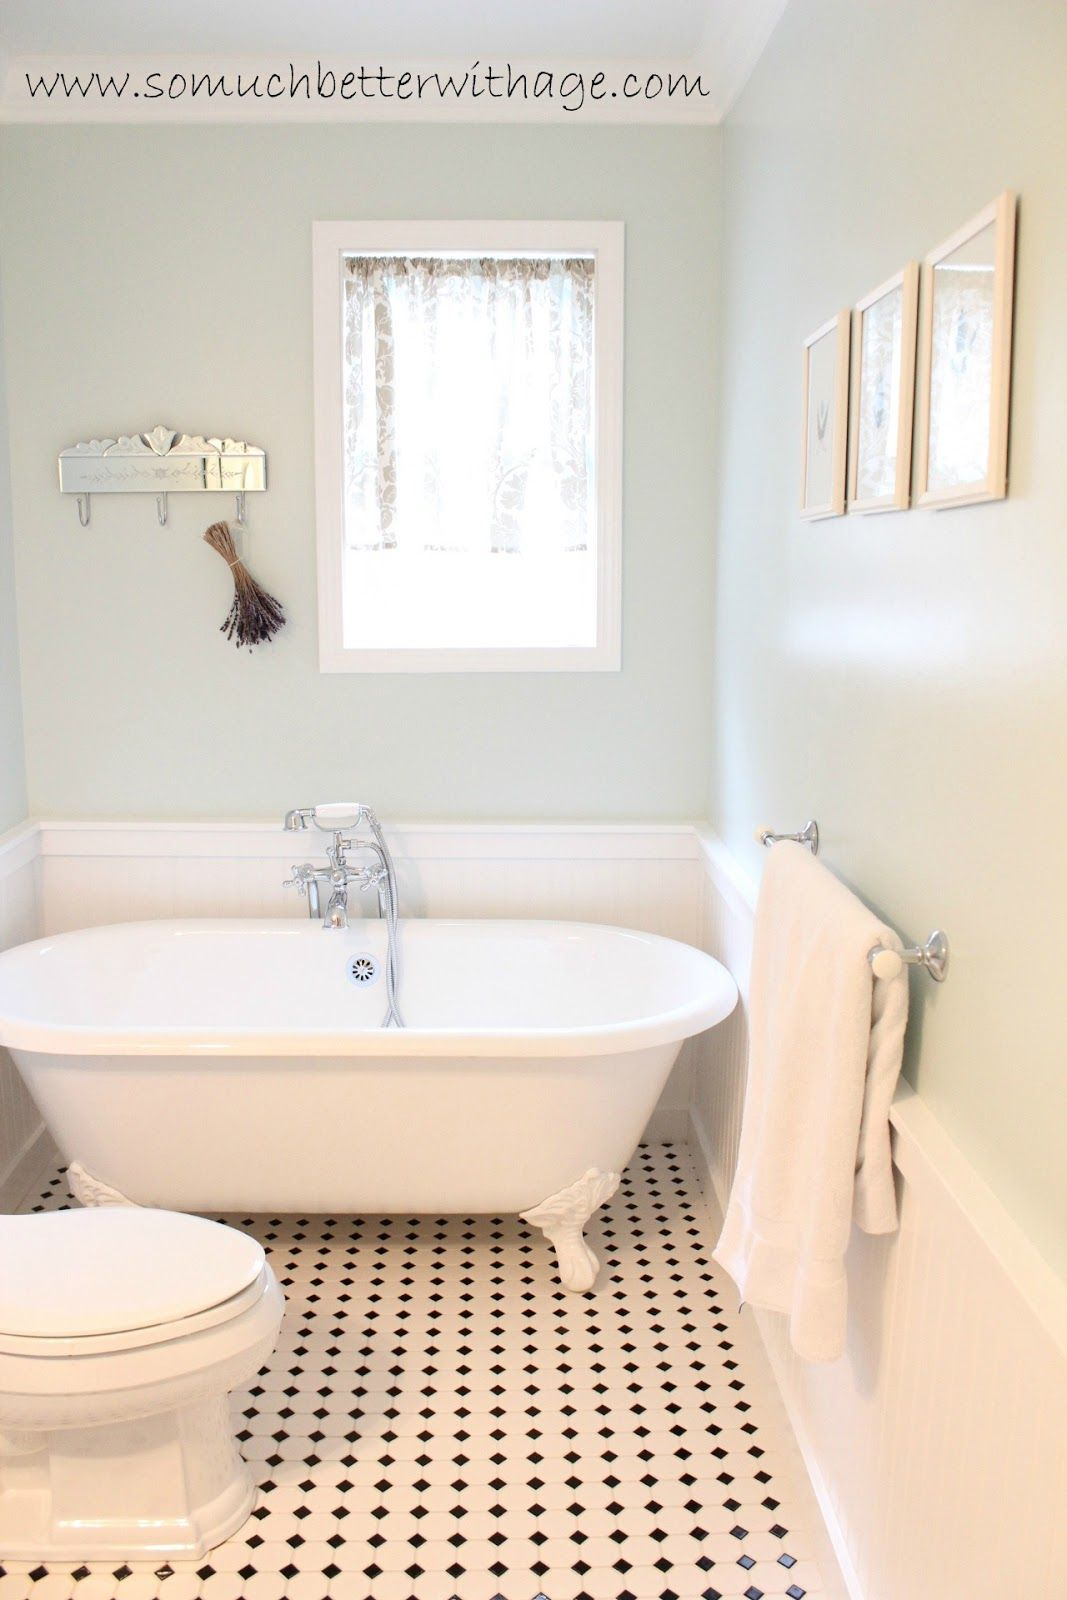 Sewing Archives | So Much Better With Age #whitebathroompaint